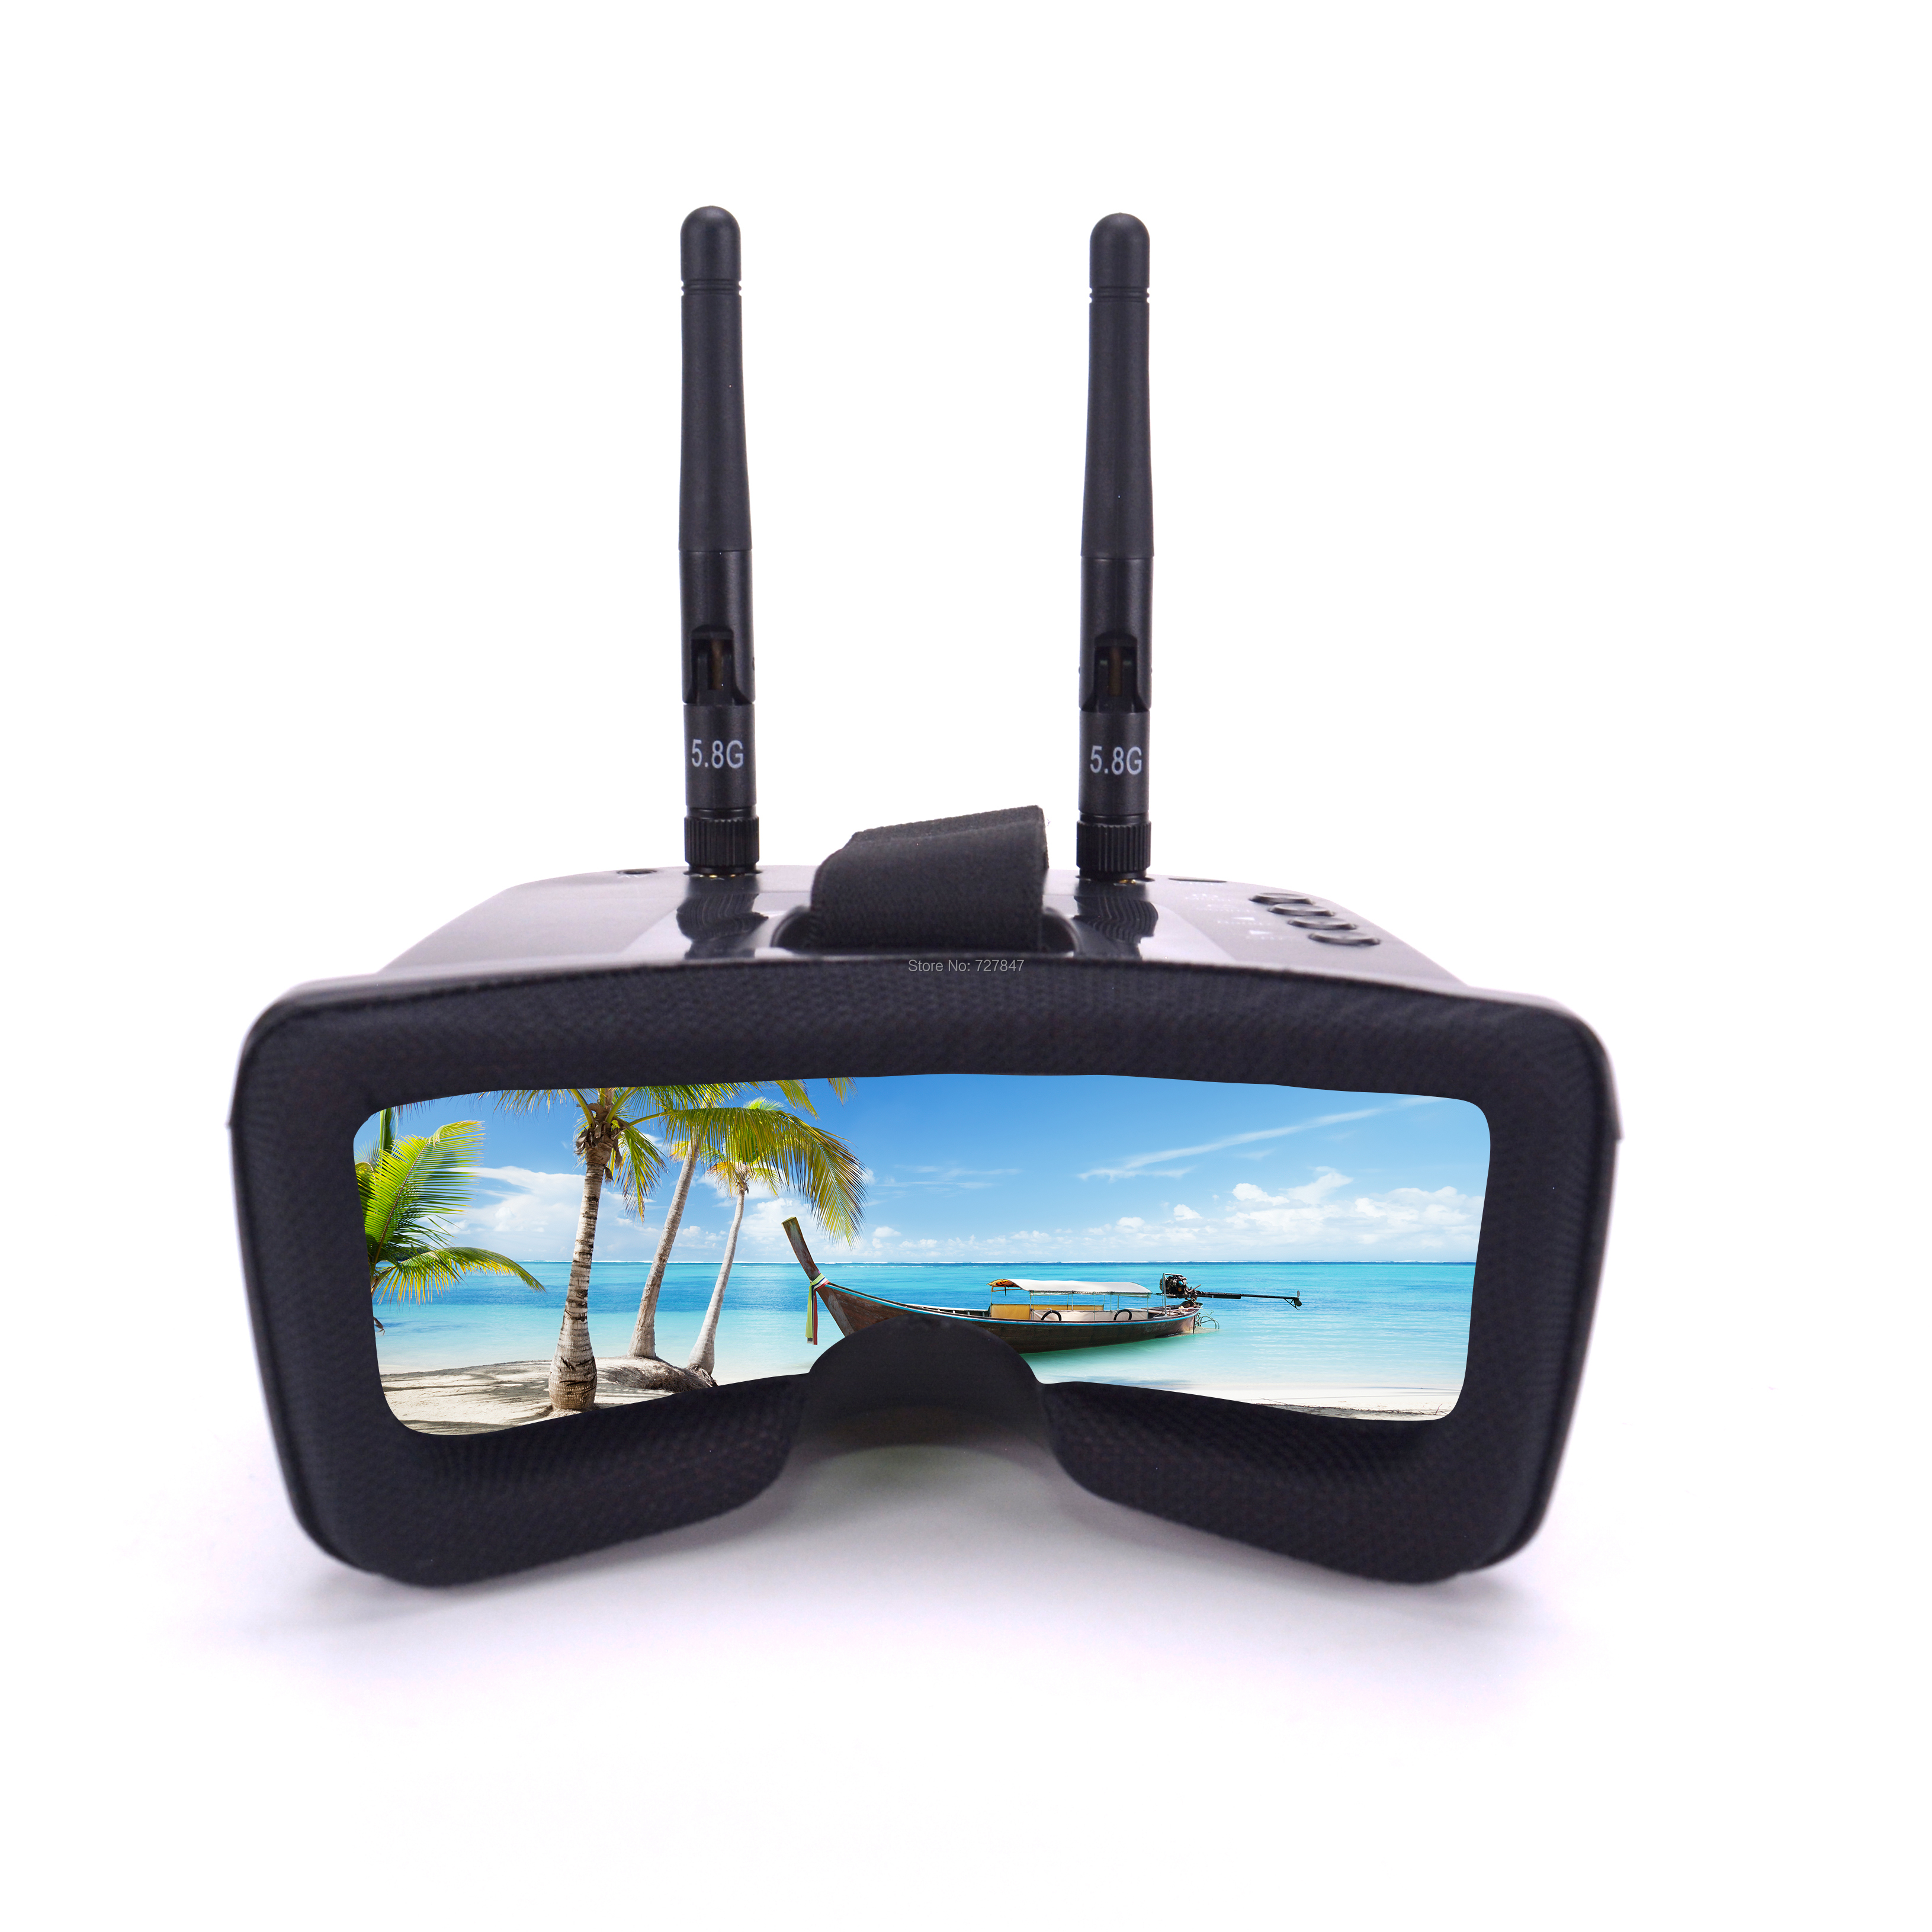 Mini FPV Goggles 3 Inches 480 320 Display 5 8G 40CH Auto Search w Build in